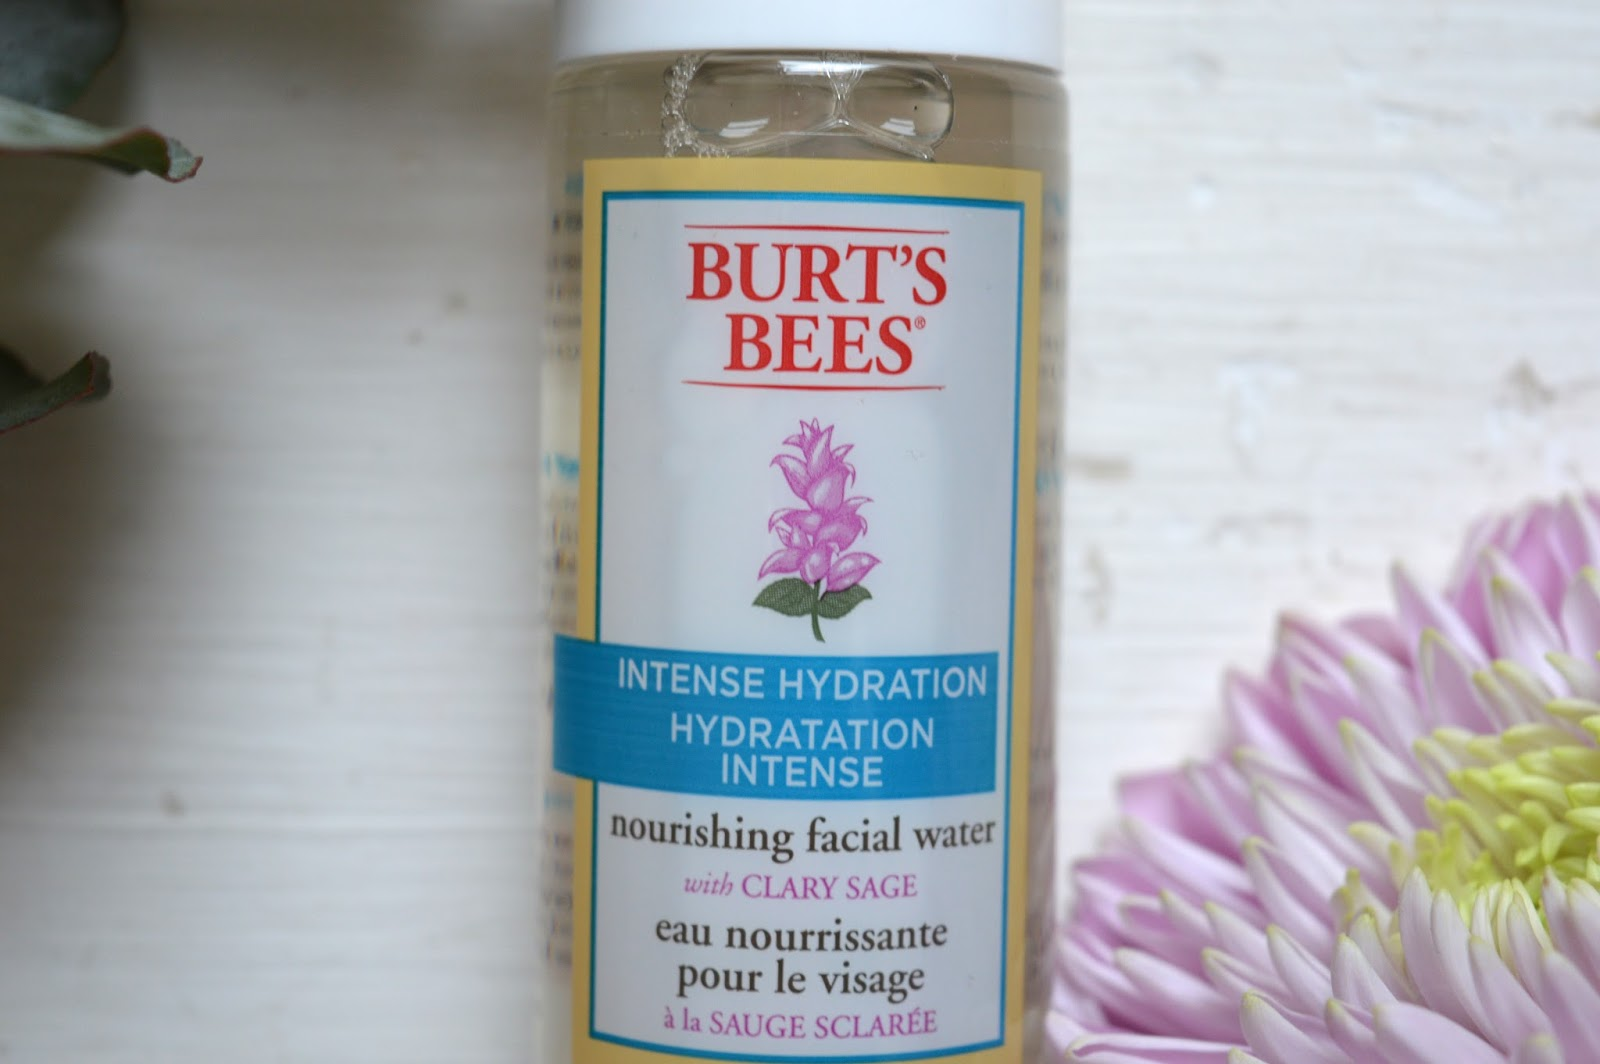 Burt's Bees Intense Hydration Nourishing Facial Water Review, beauty bloggers, Hampshire bloggers, UK beauty blog, Dalry Rose Blog